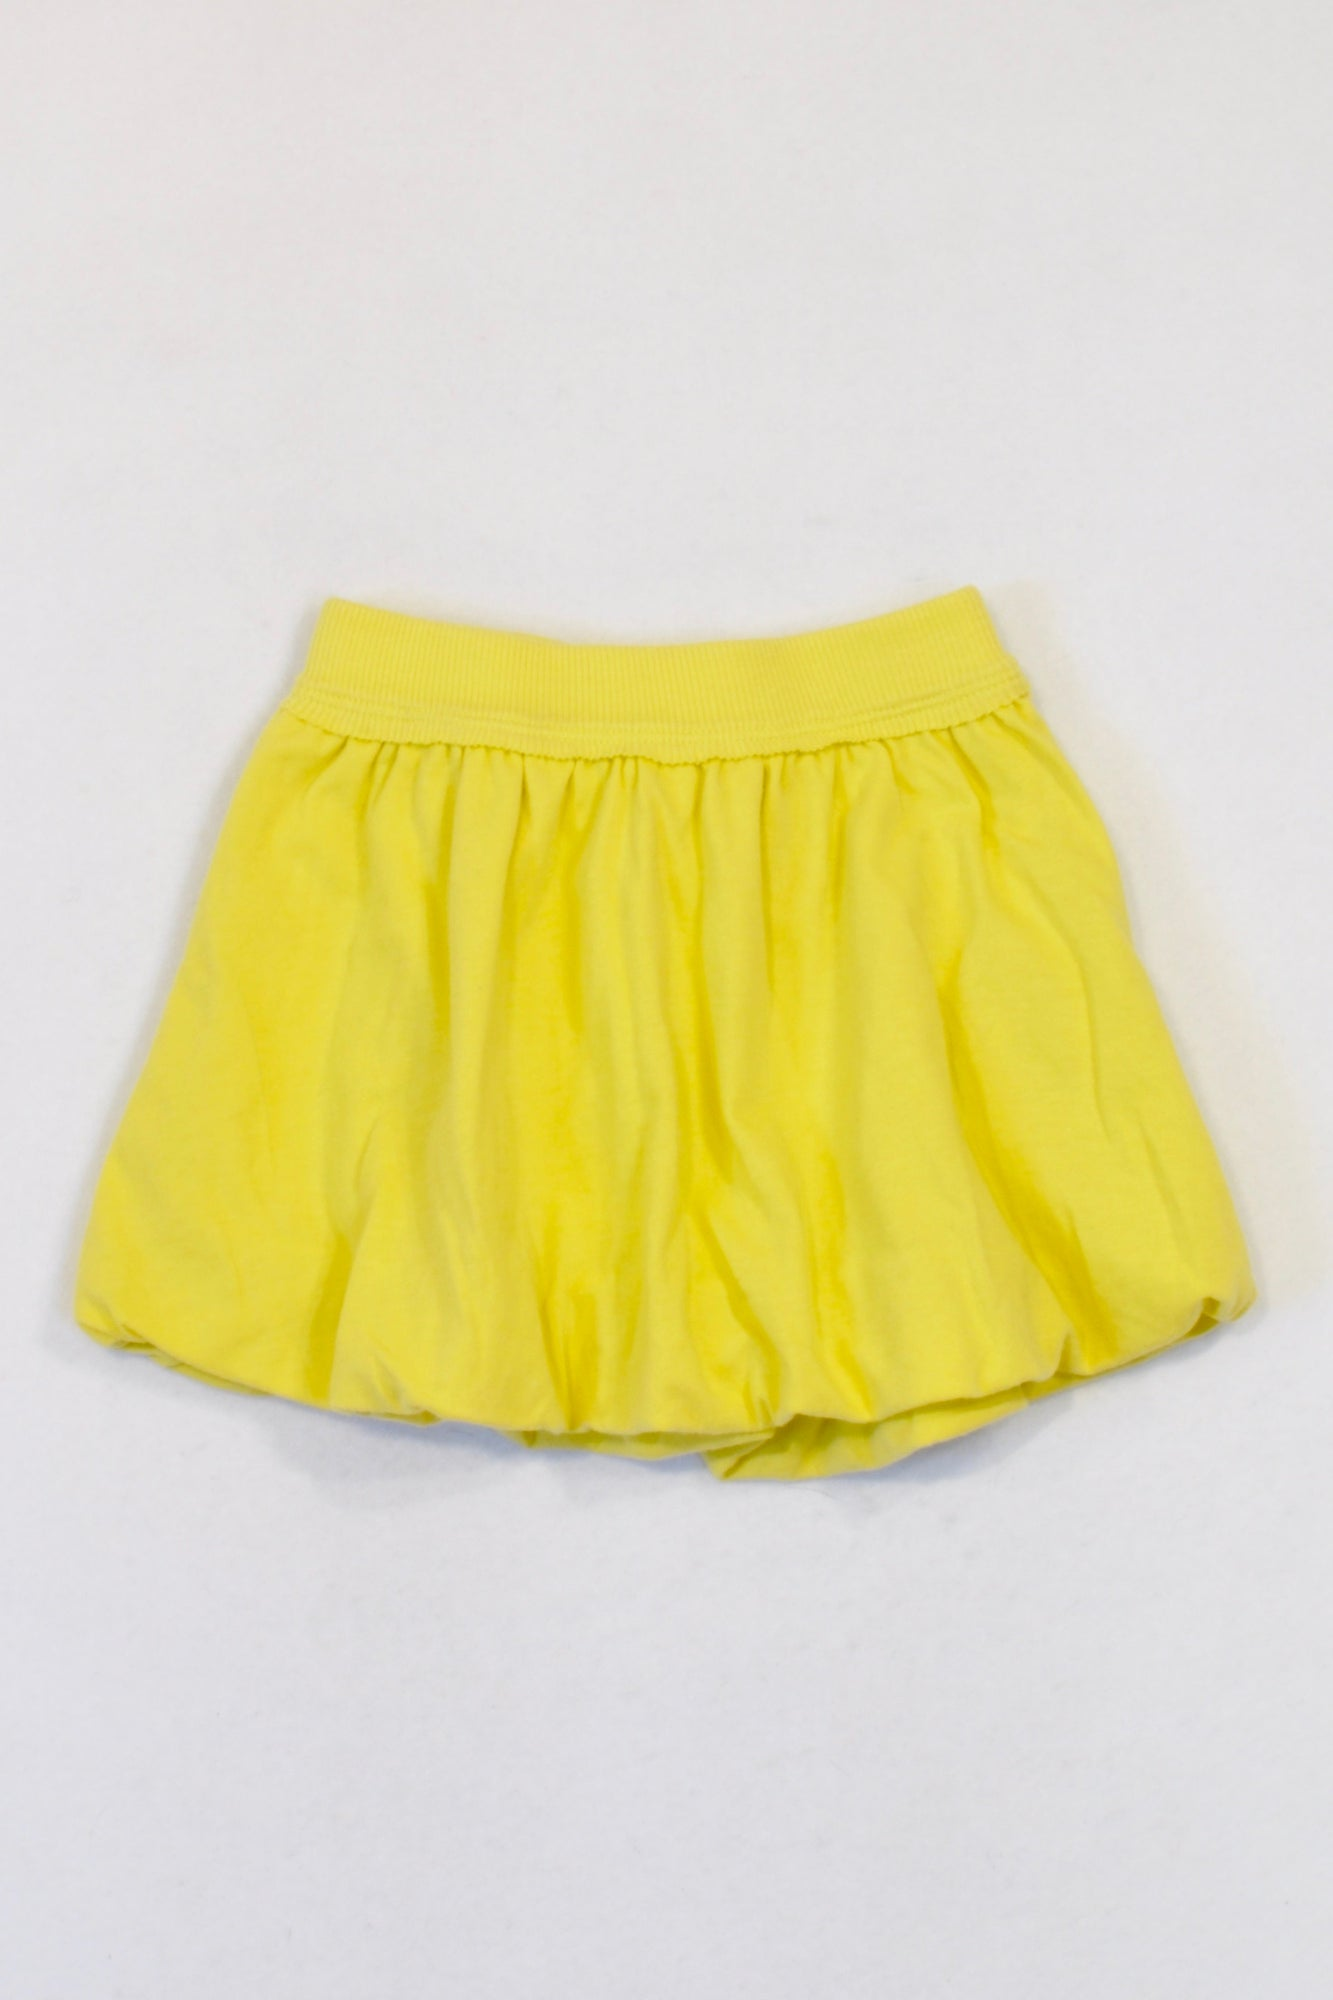 Soco Basic Yellow Bubble Skirt Girls 6-12 months